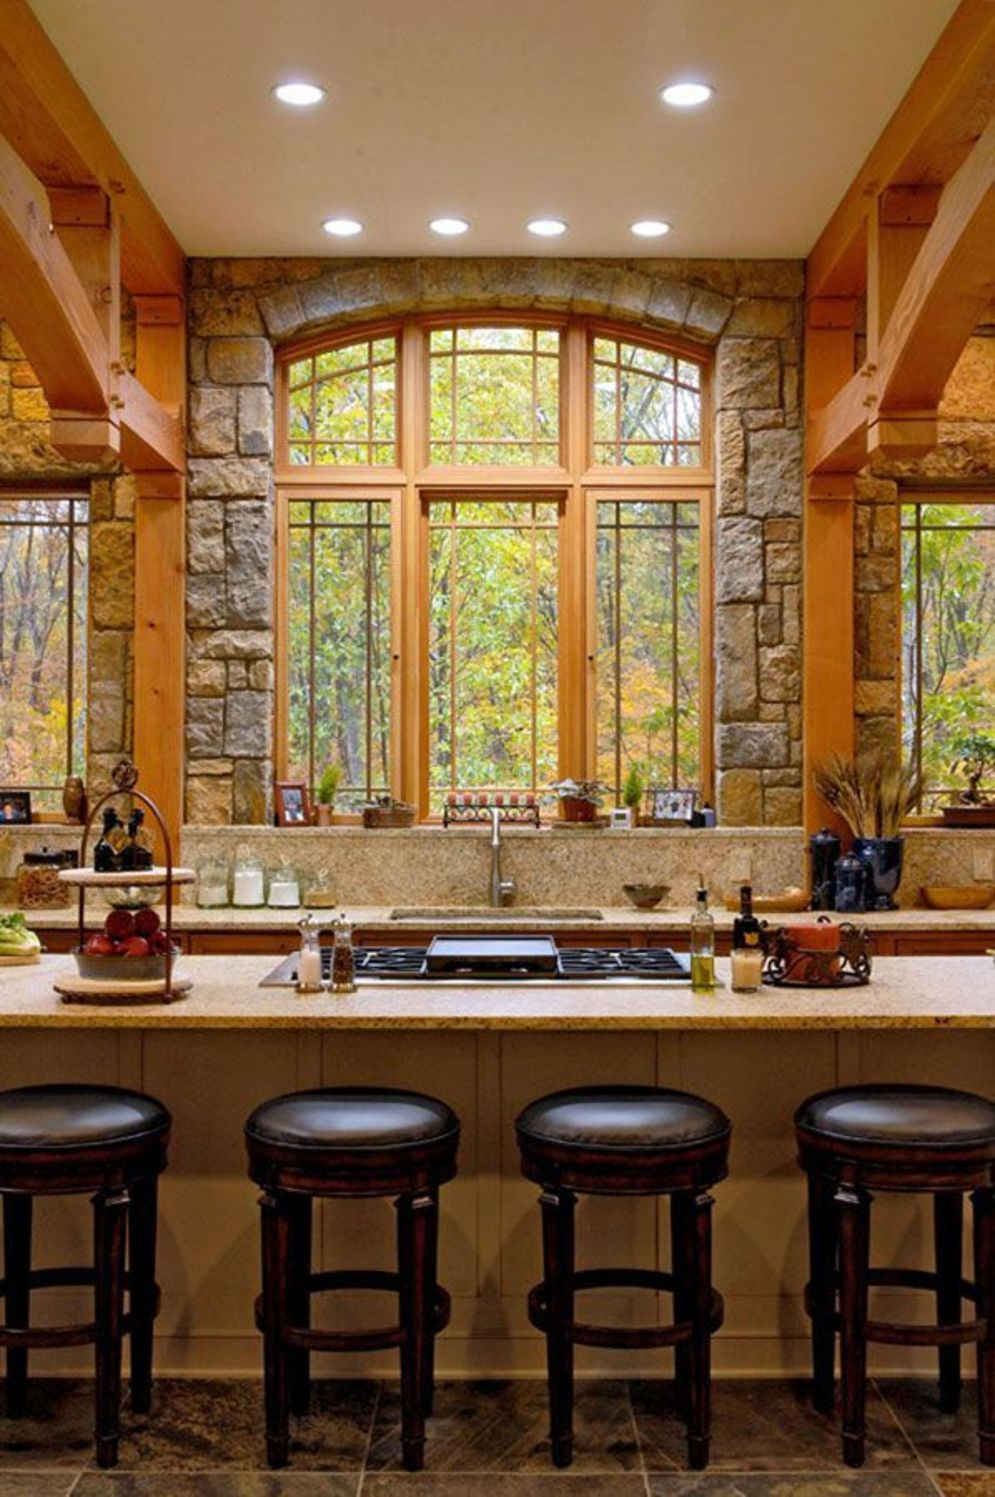 Rustic cabin kitchen designs showing warm wooden structure in earthy natural palettes Image 6